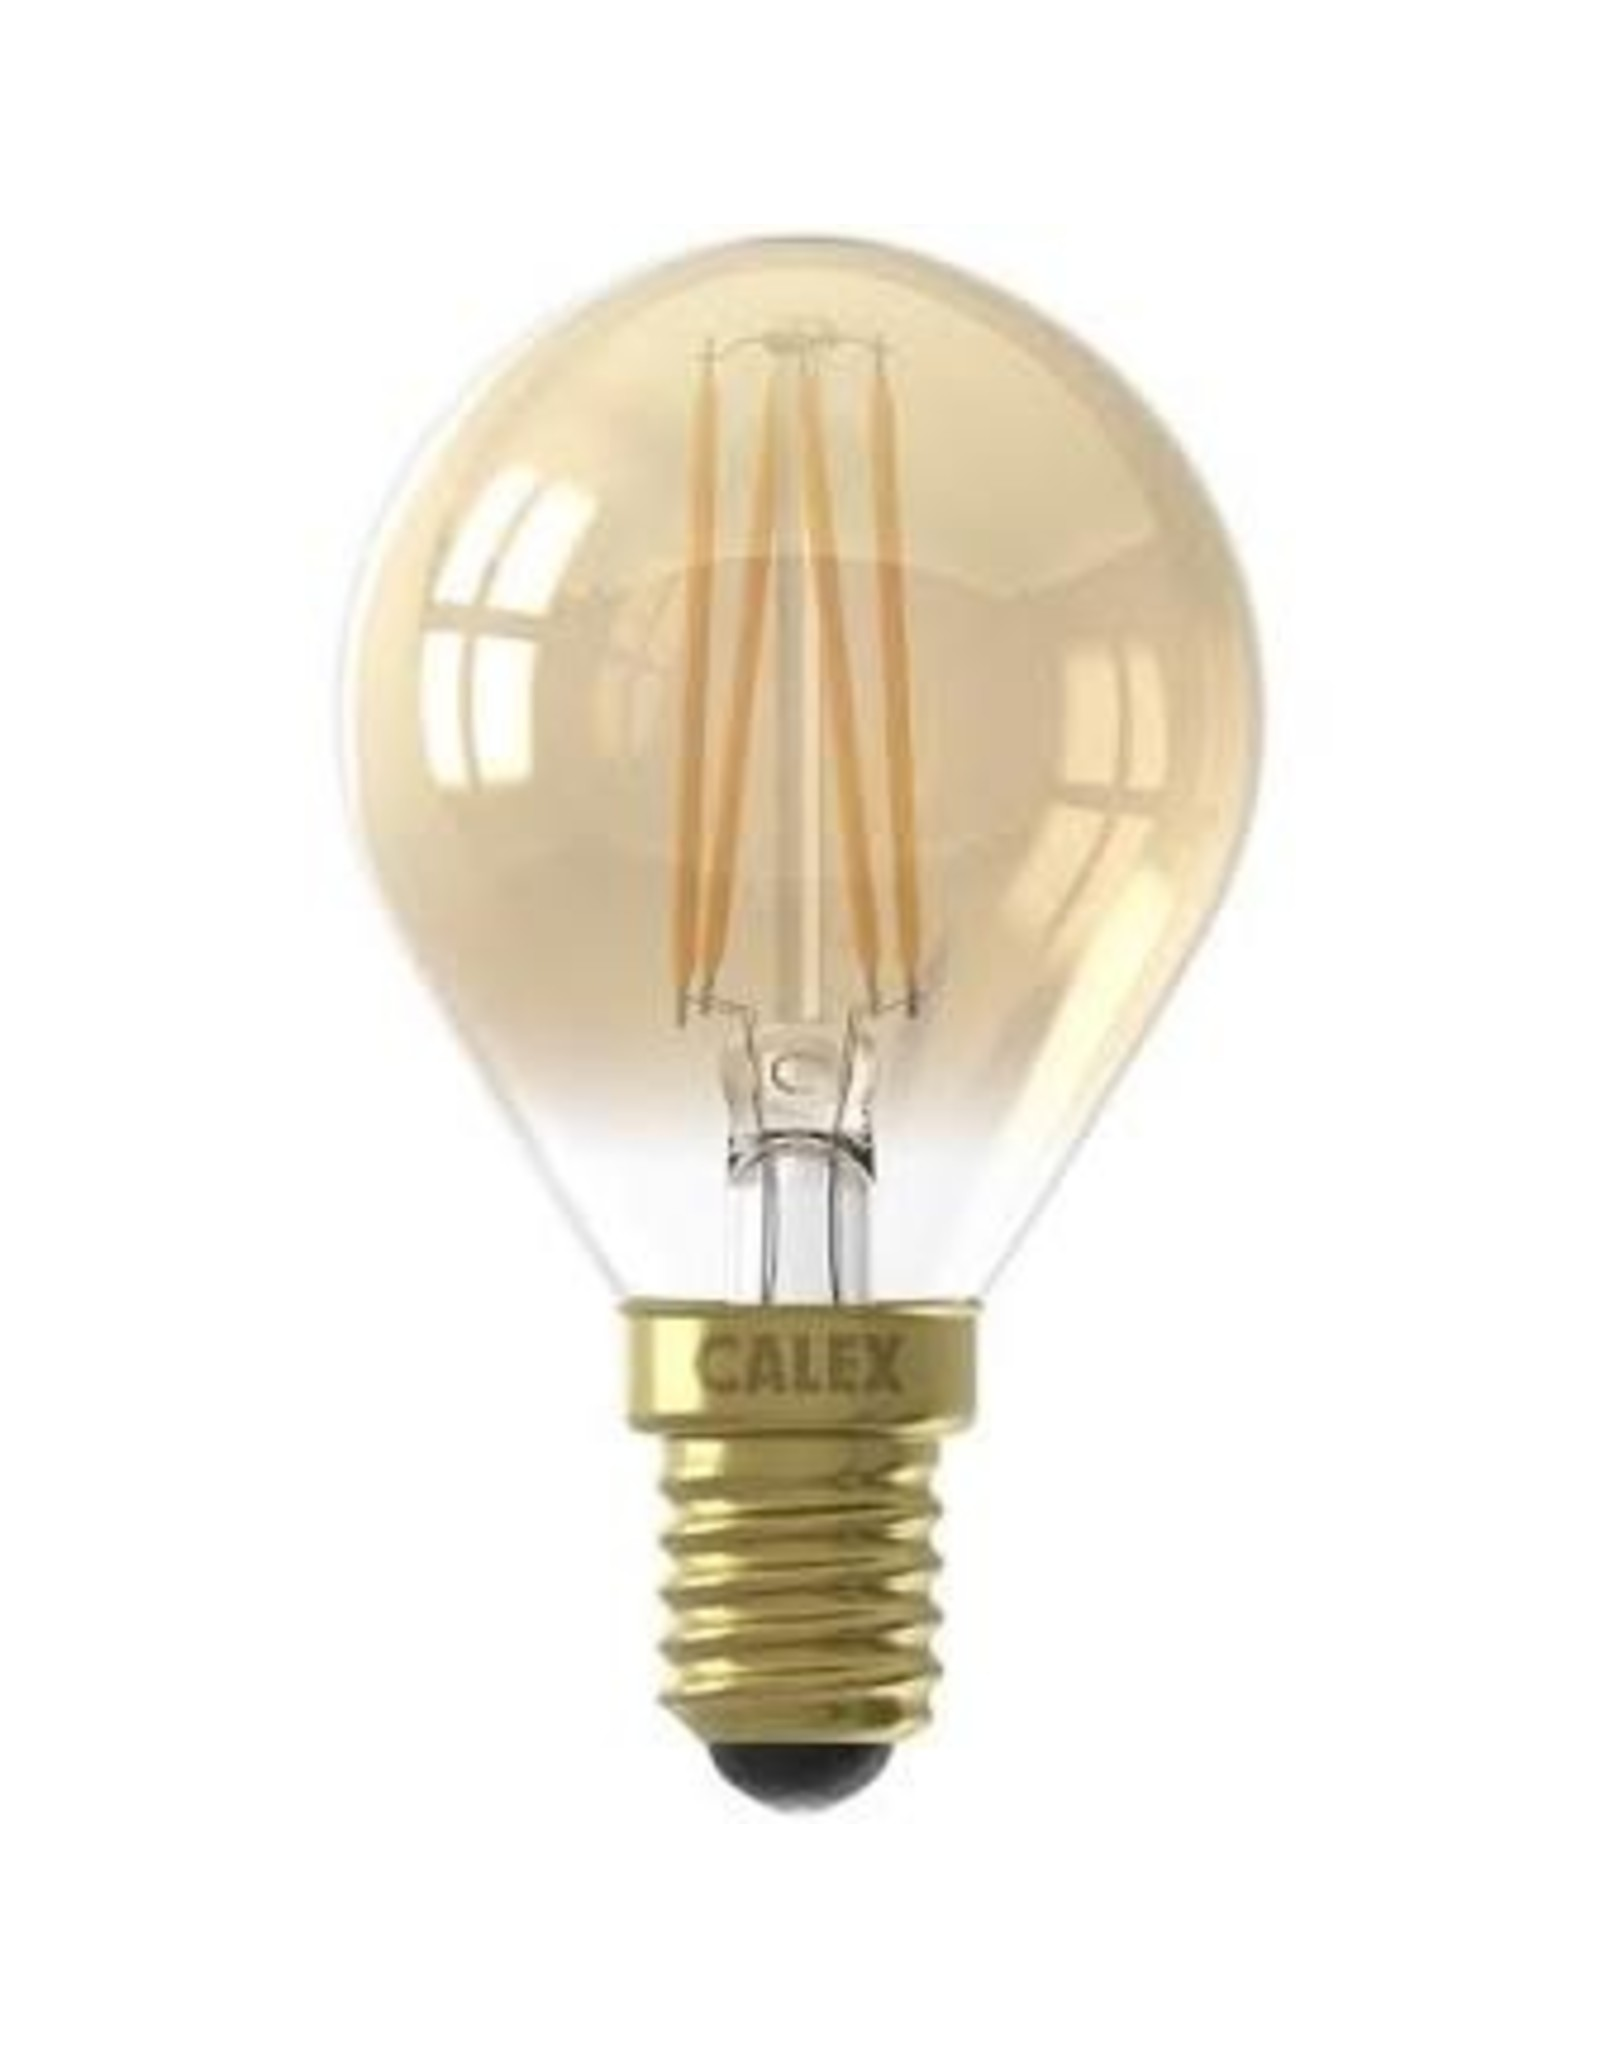 Calex LED Full Glass Filament Ball-lamp 220-240V 3,5W 200lm E14 P45, Gold 2100K CRI80 Dimmable, energy label A+